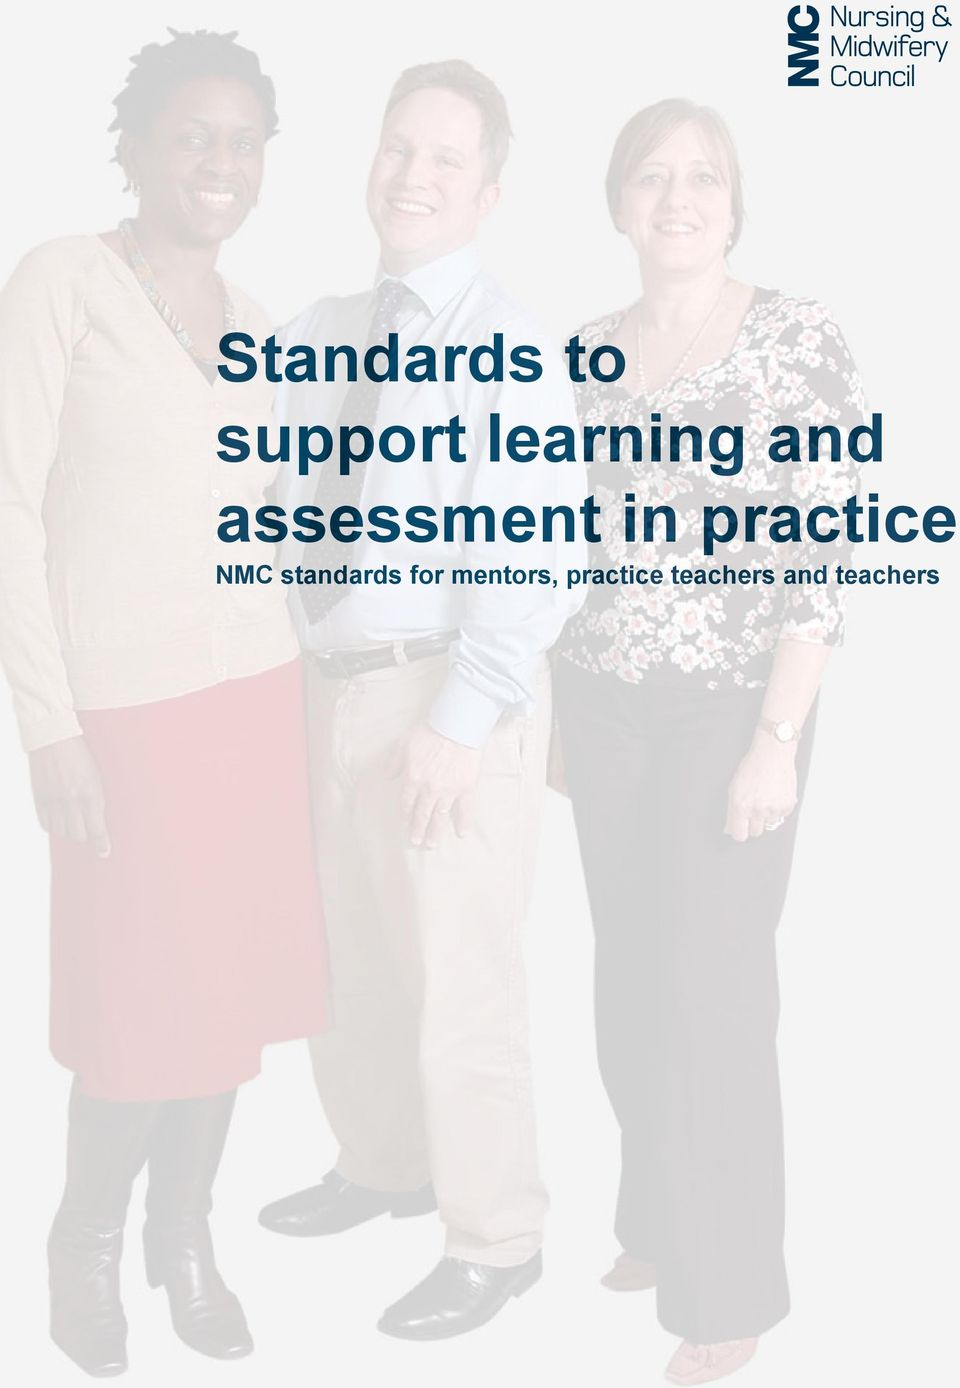 practice NMC standards for